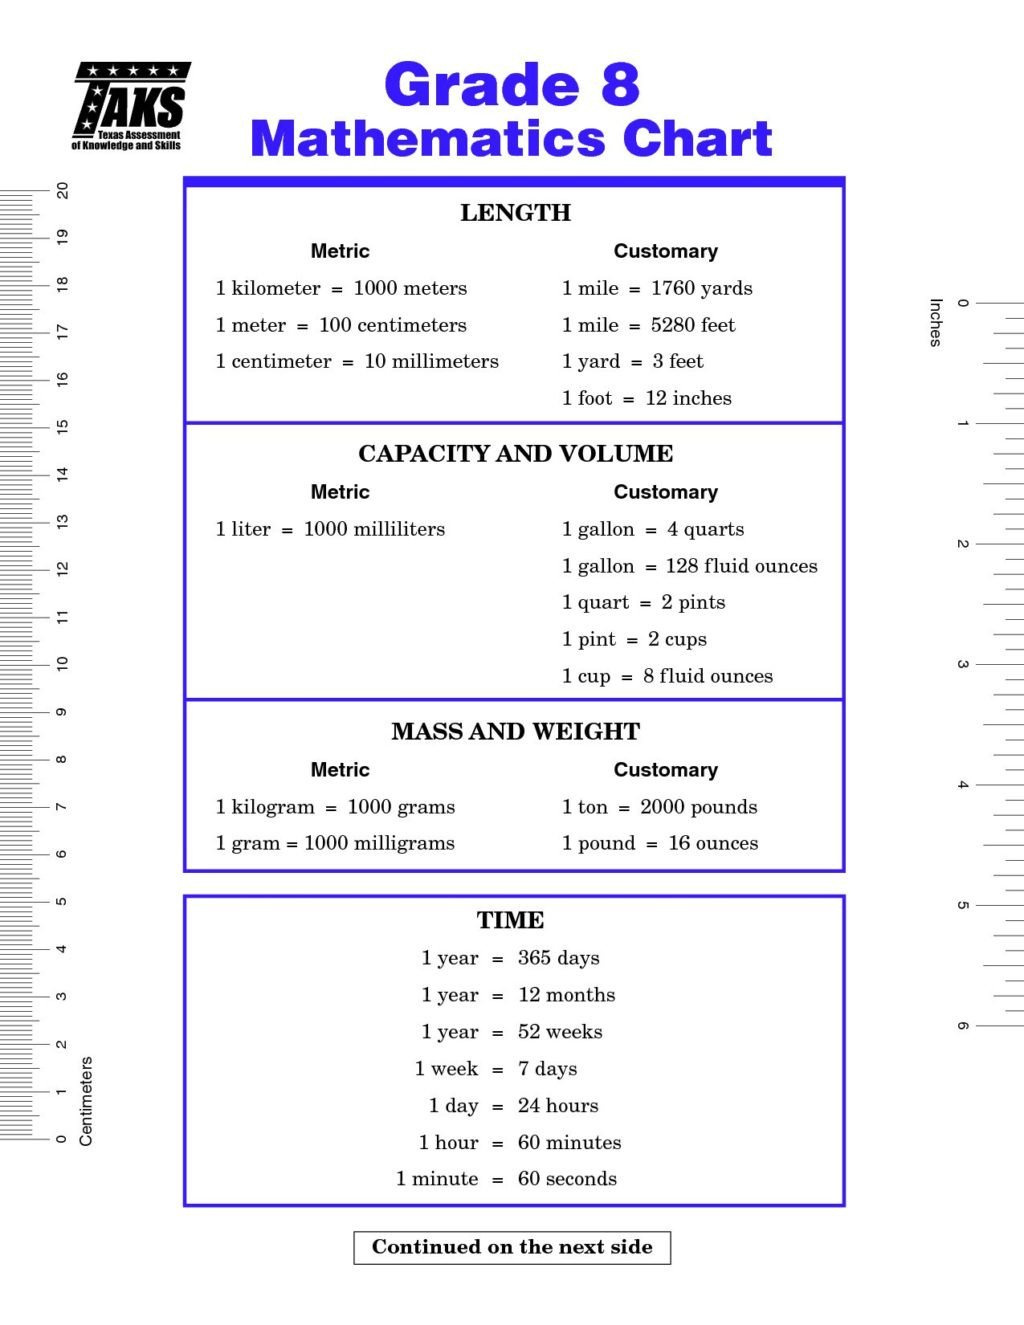 Metric and Customary Conversions Worksheets Worksheet Measurement Worksheets Grade Worksheet Awesome